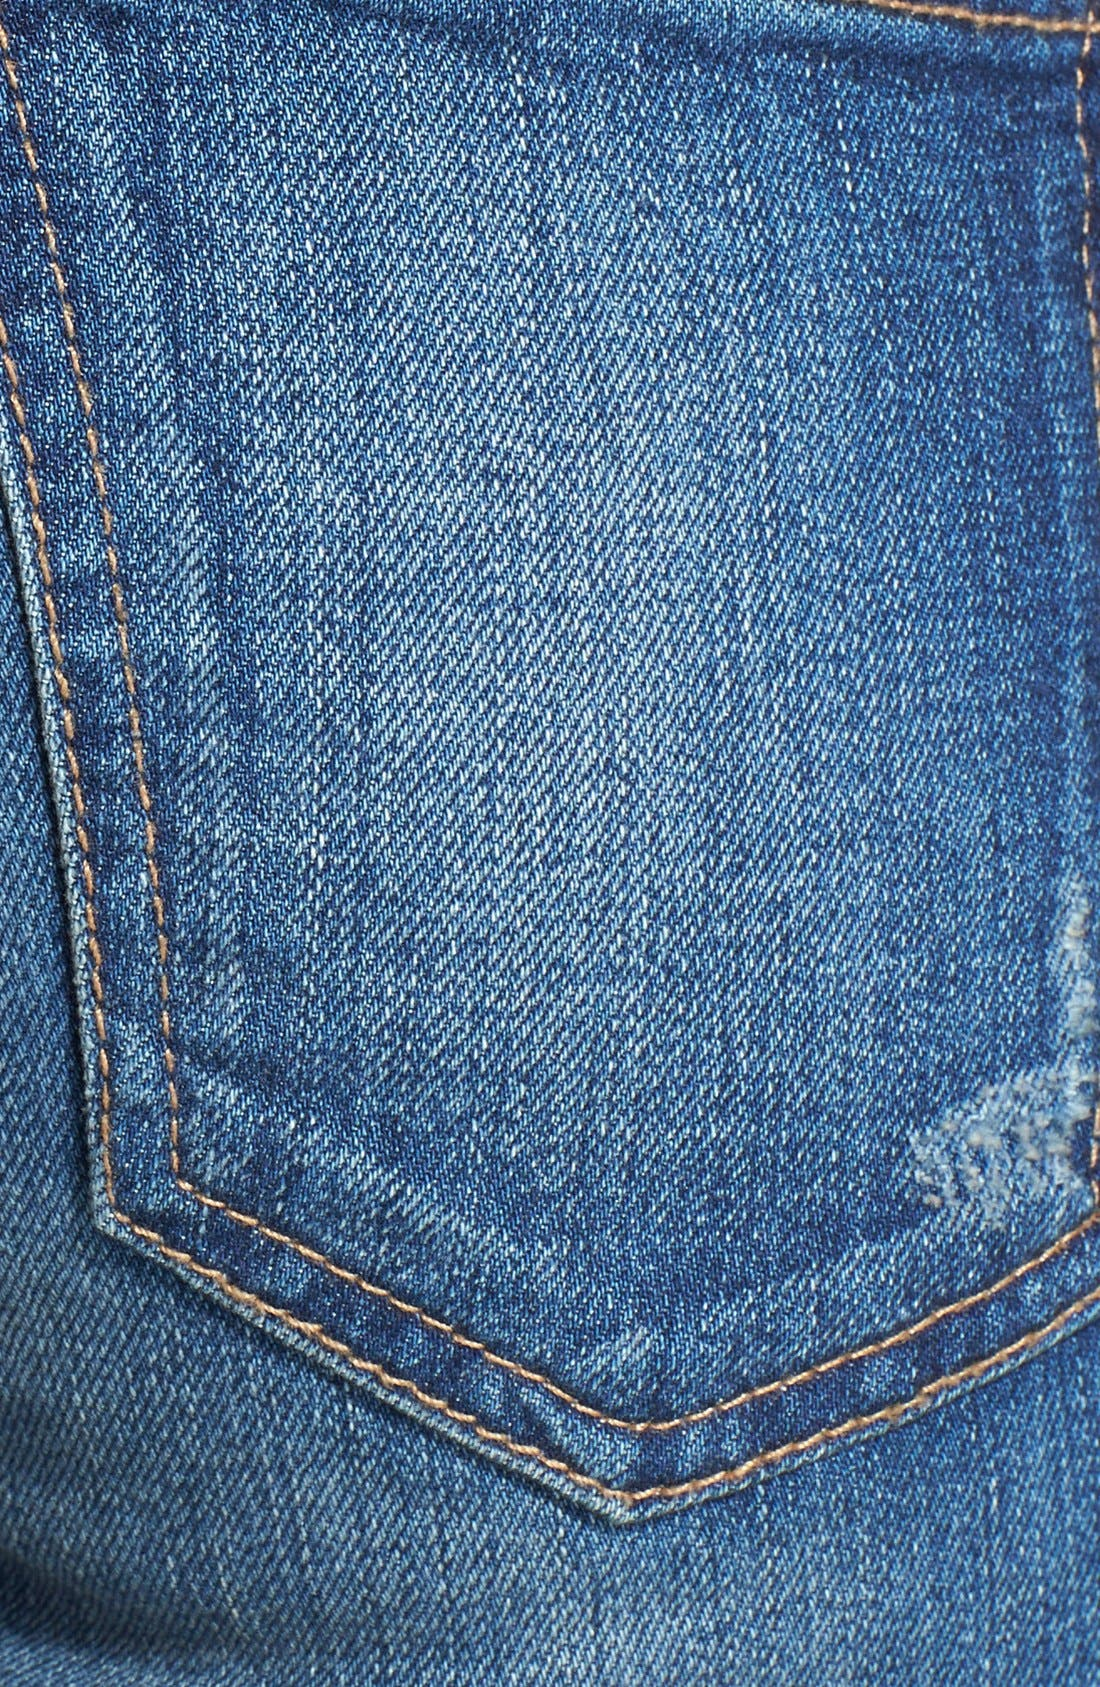 'The Stiletto' Destroyed Skinny Jeans,                             Alternate thumbnail 15, color,